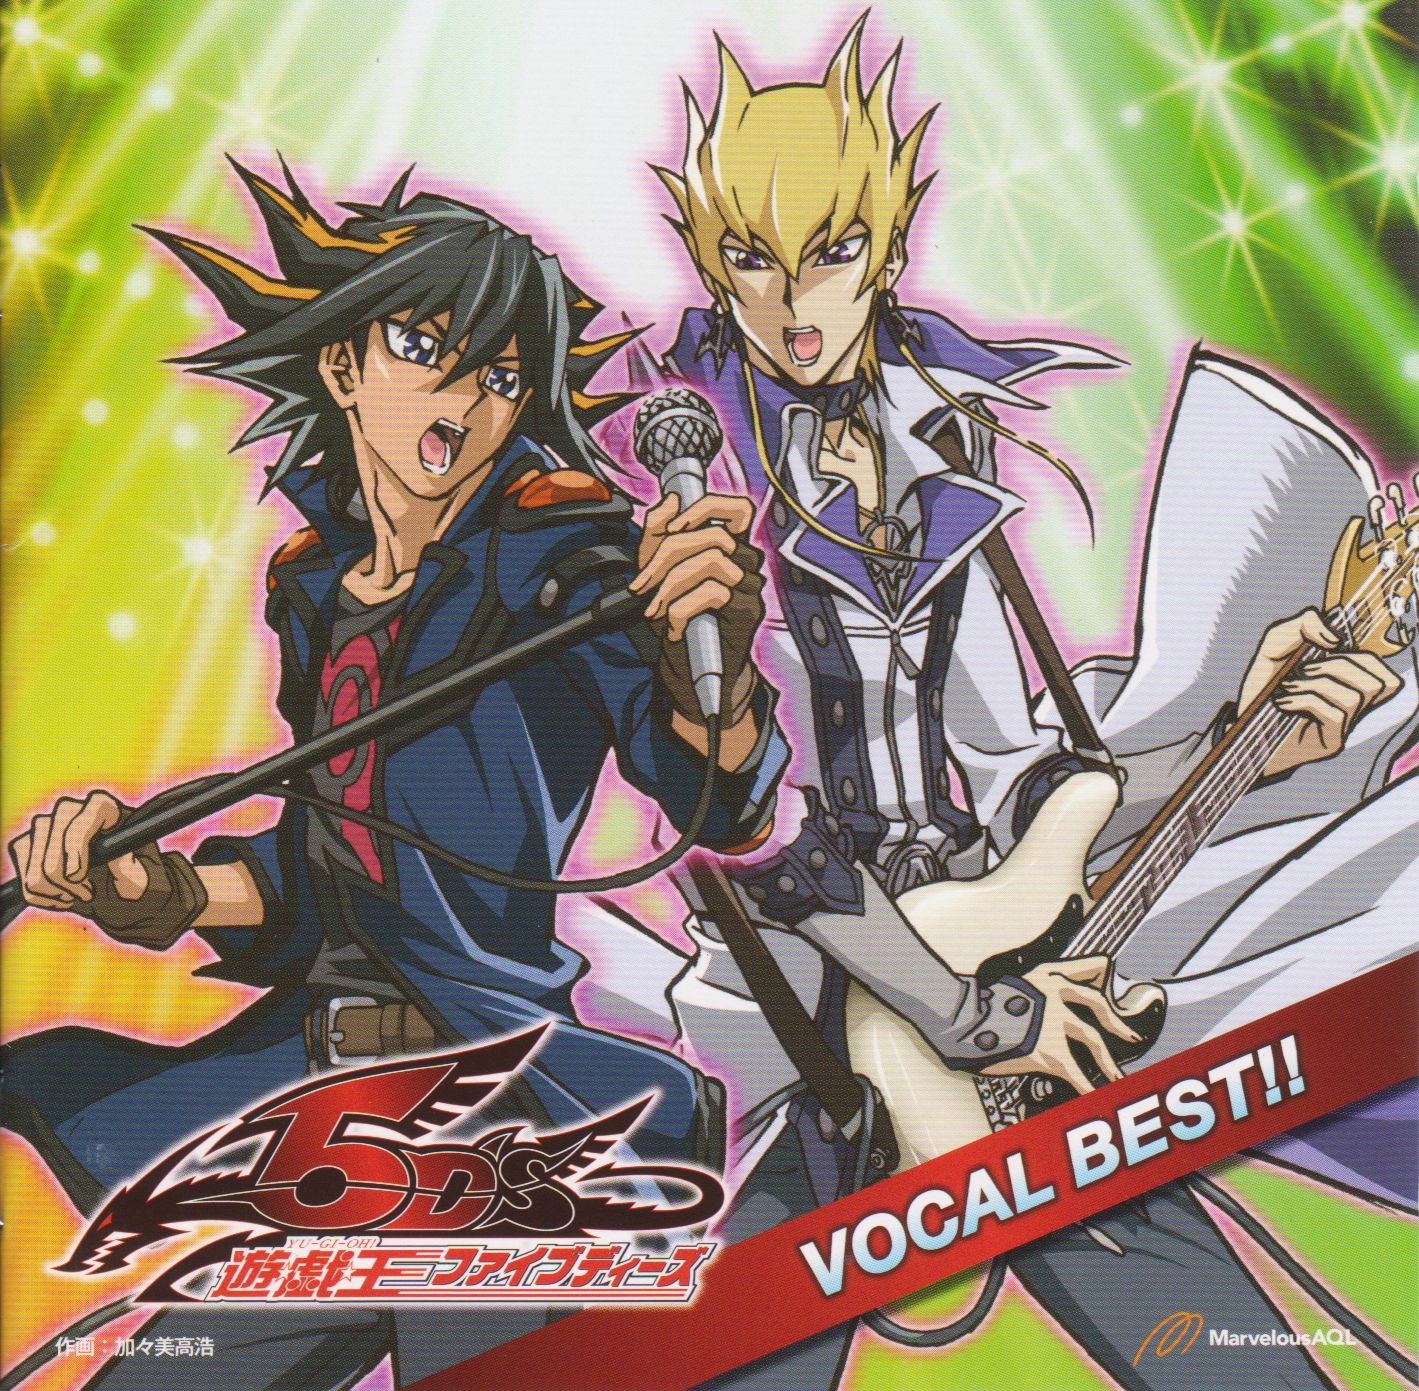 Oh Libro Yu Gi Oh 5d 39s Vocal Best Yusei Fudo And Jack Atlas